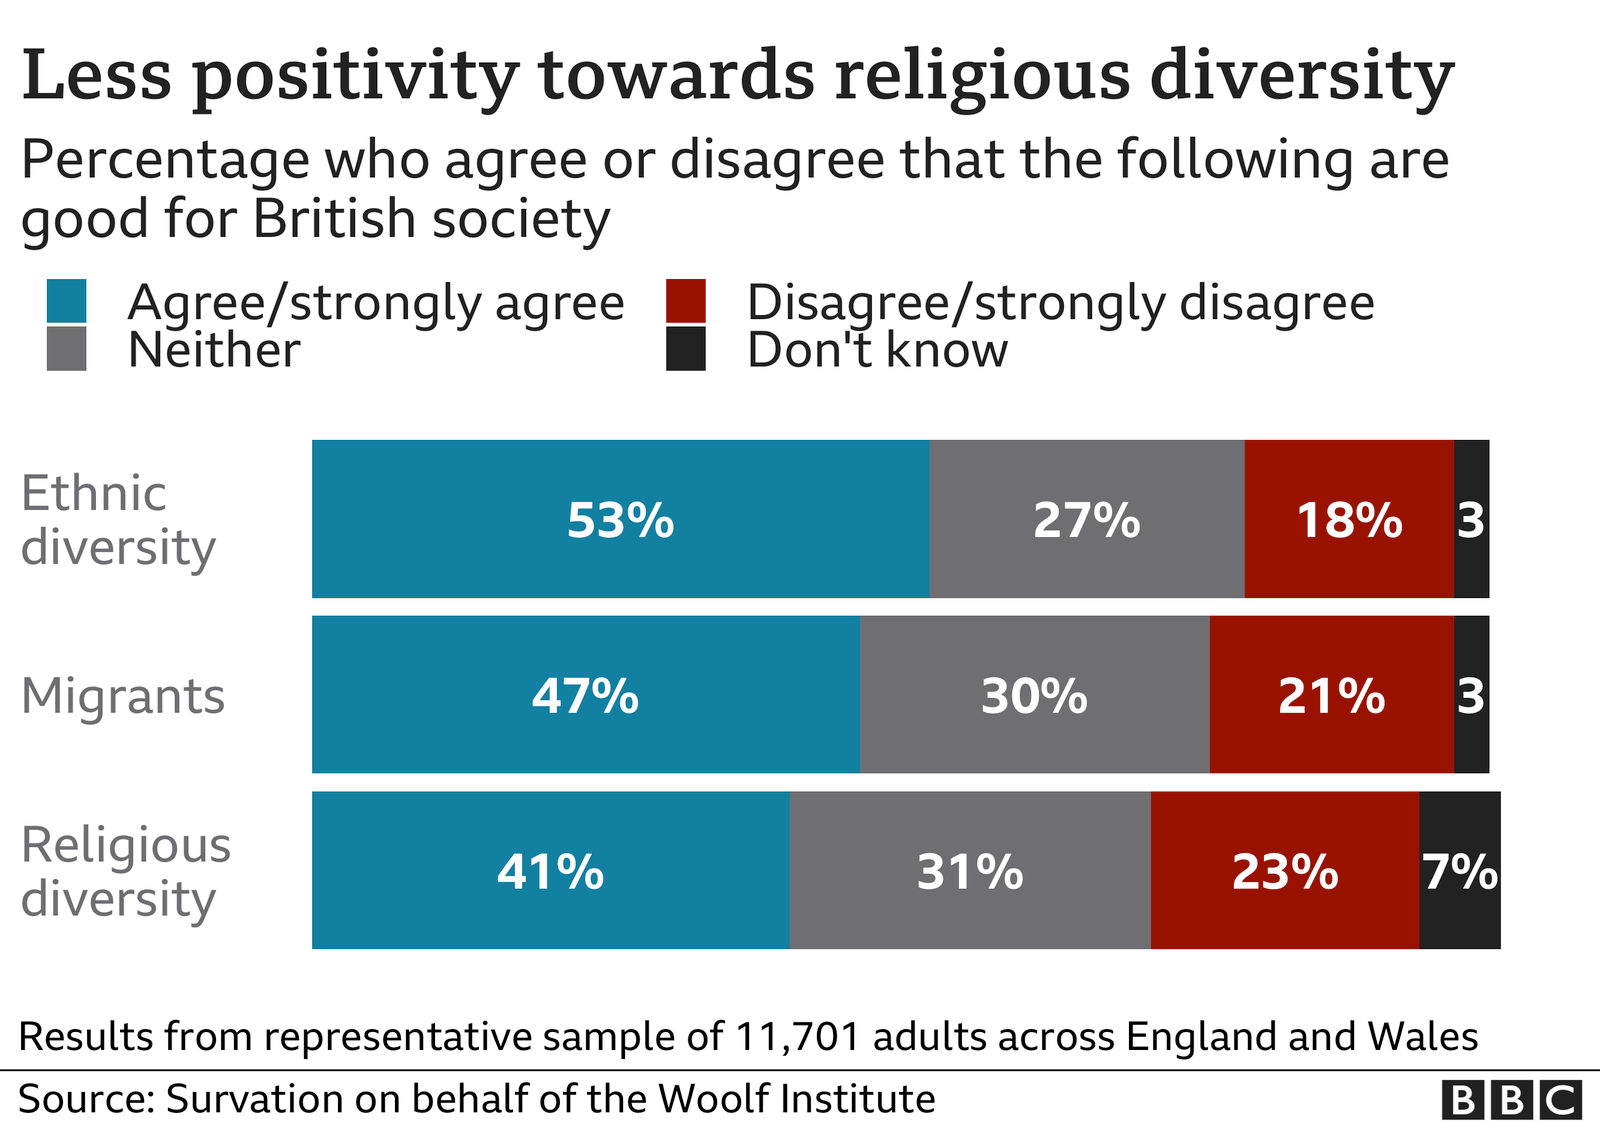 Graphic showing the percentage who agree or disagree that ethnic diversity, migrants and religious diversity are good for British society